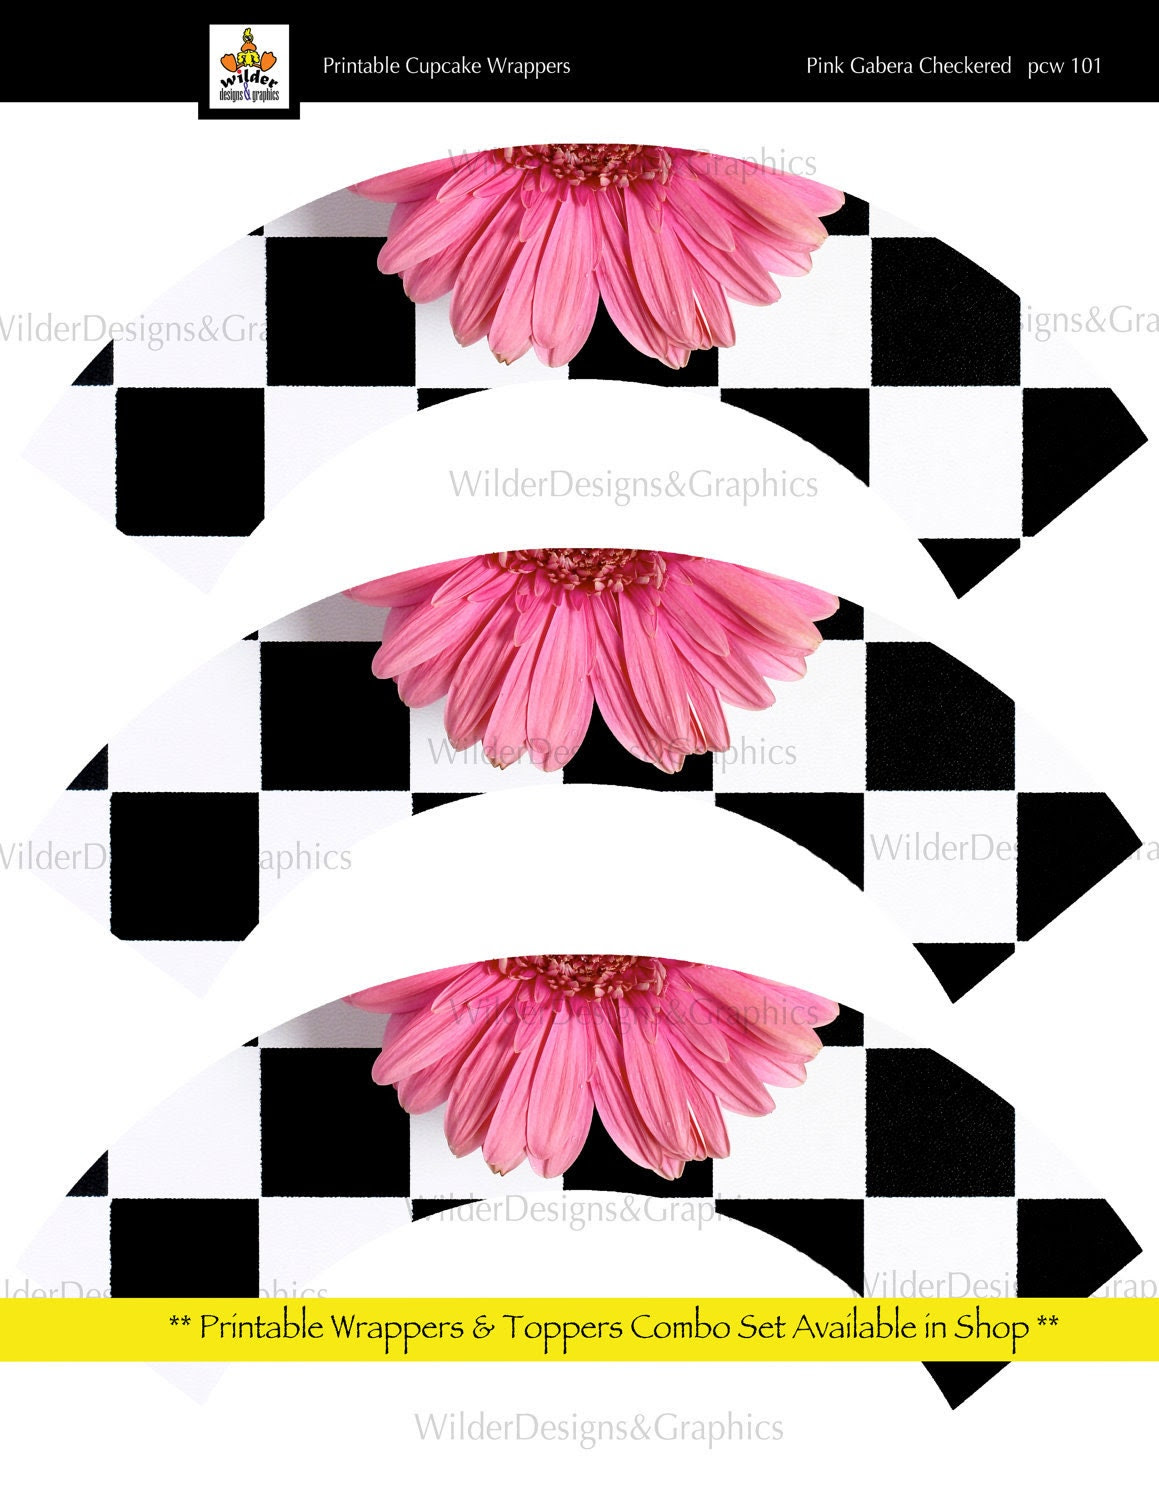 Printable Cupcake Wrappers - Checkered Pink Gabera (pcw101)